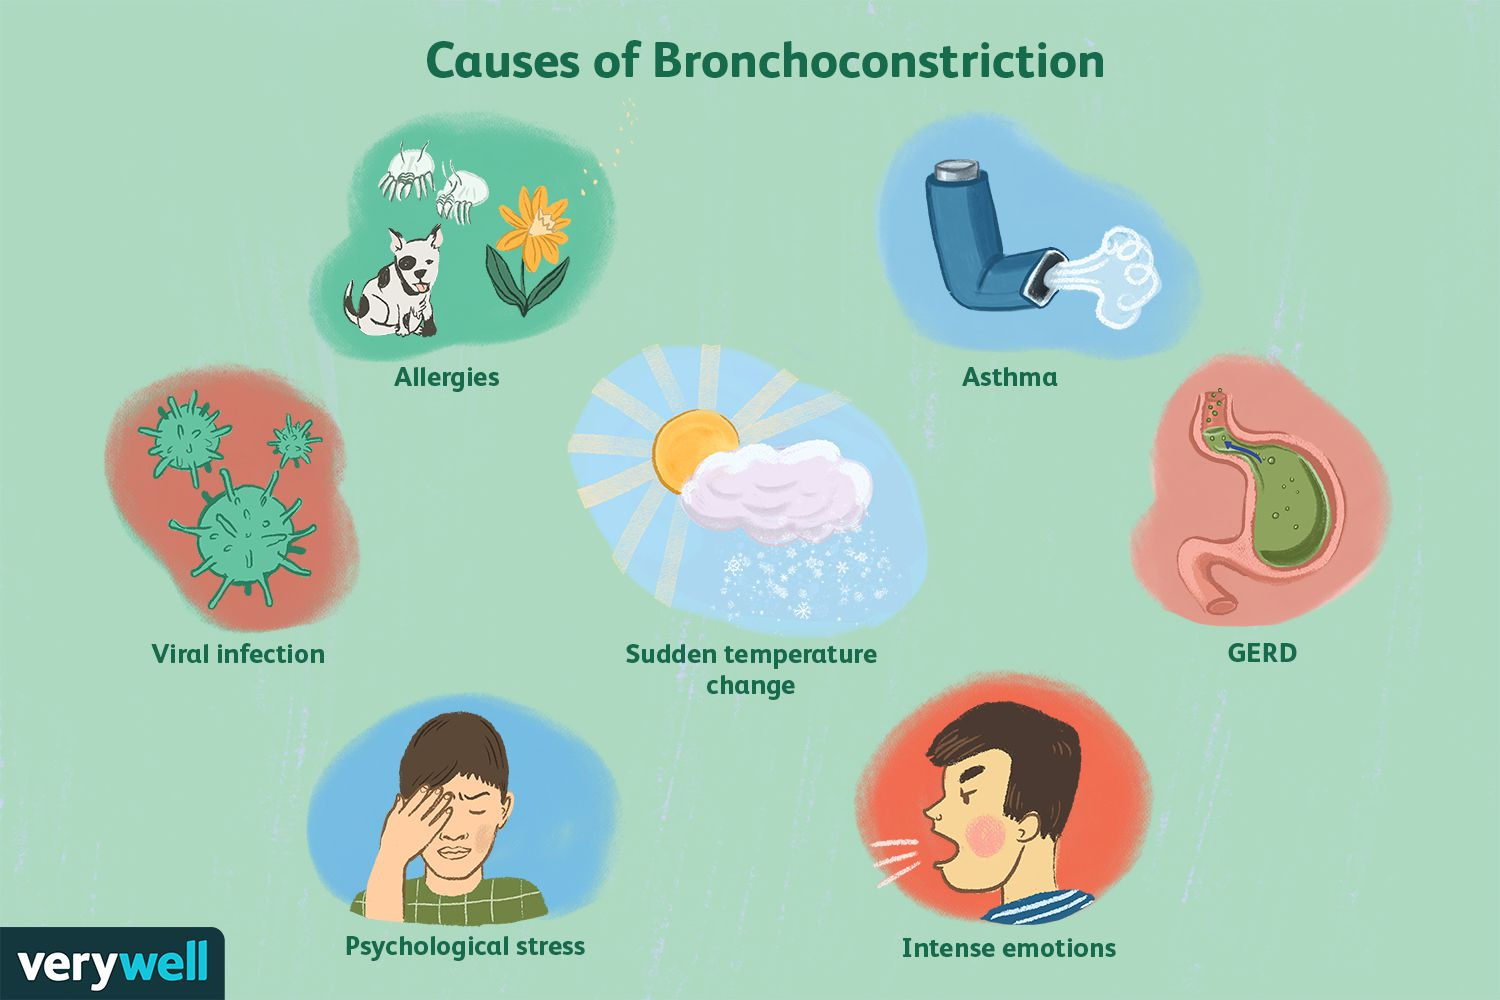 Causes of Bronchoconstriction